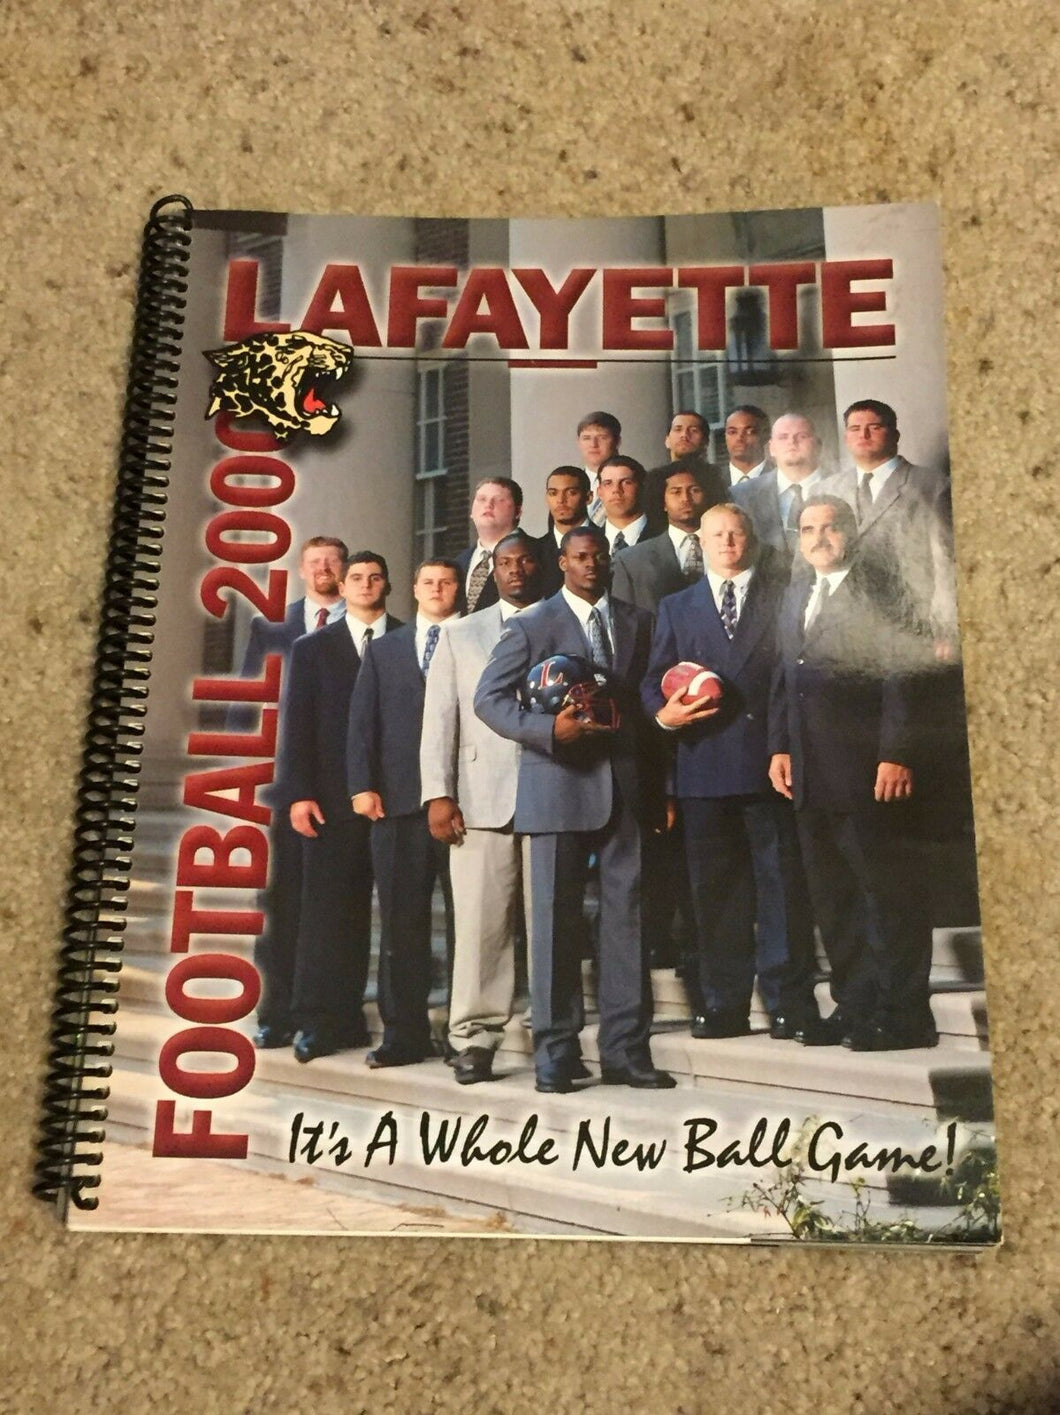 2000 LAFAYETTE LEOPARDS COLLEGE FOOTBALL MEDIA GUIDE b6